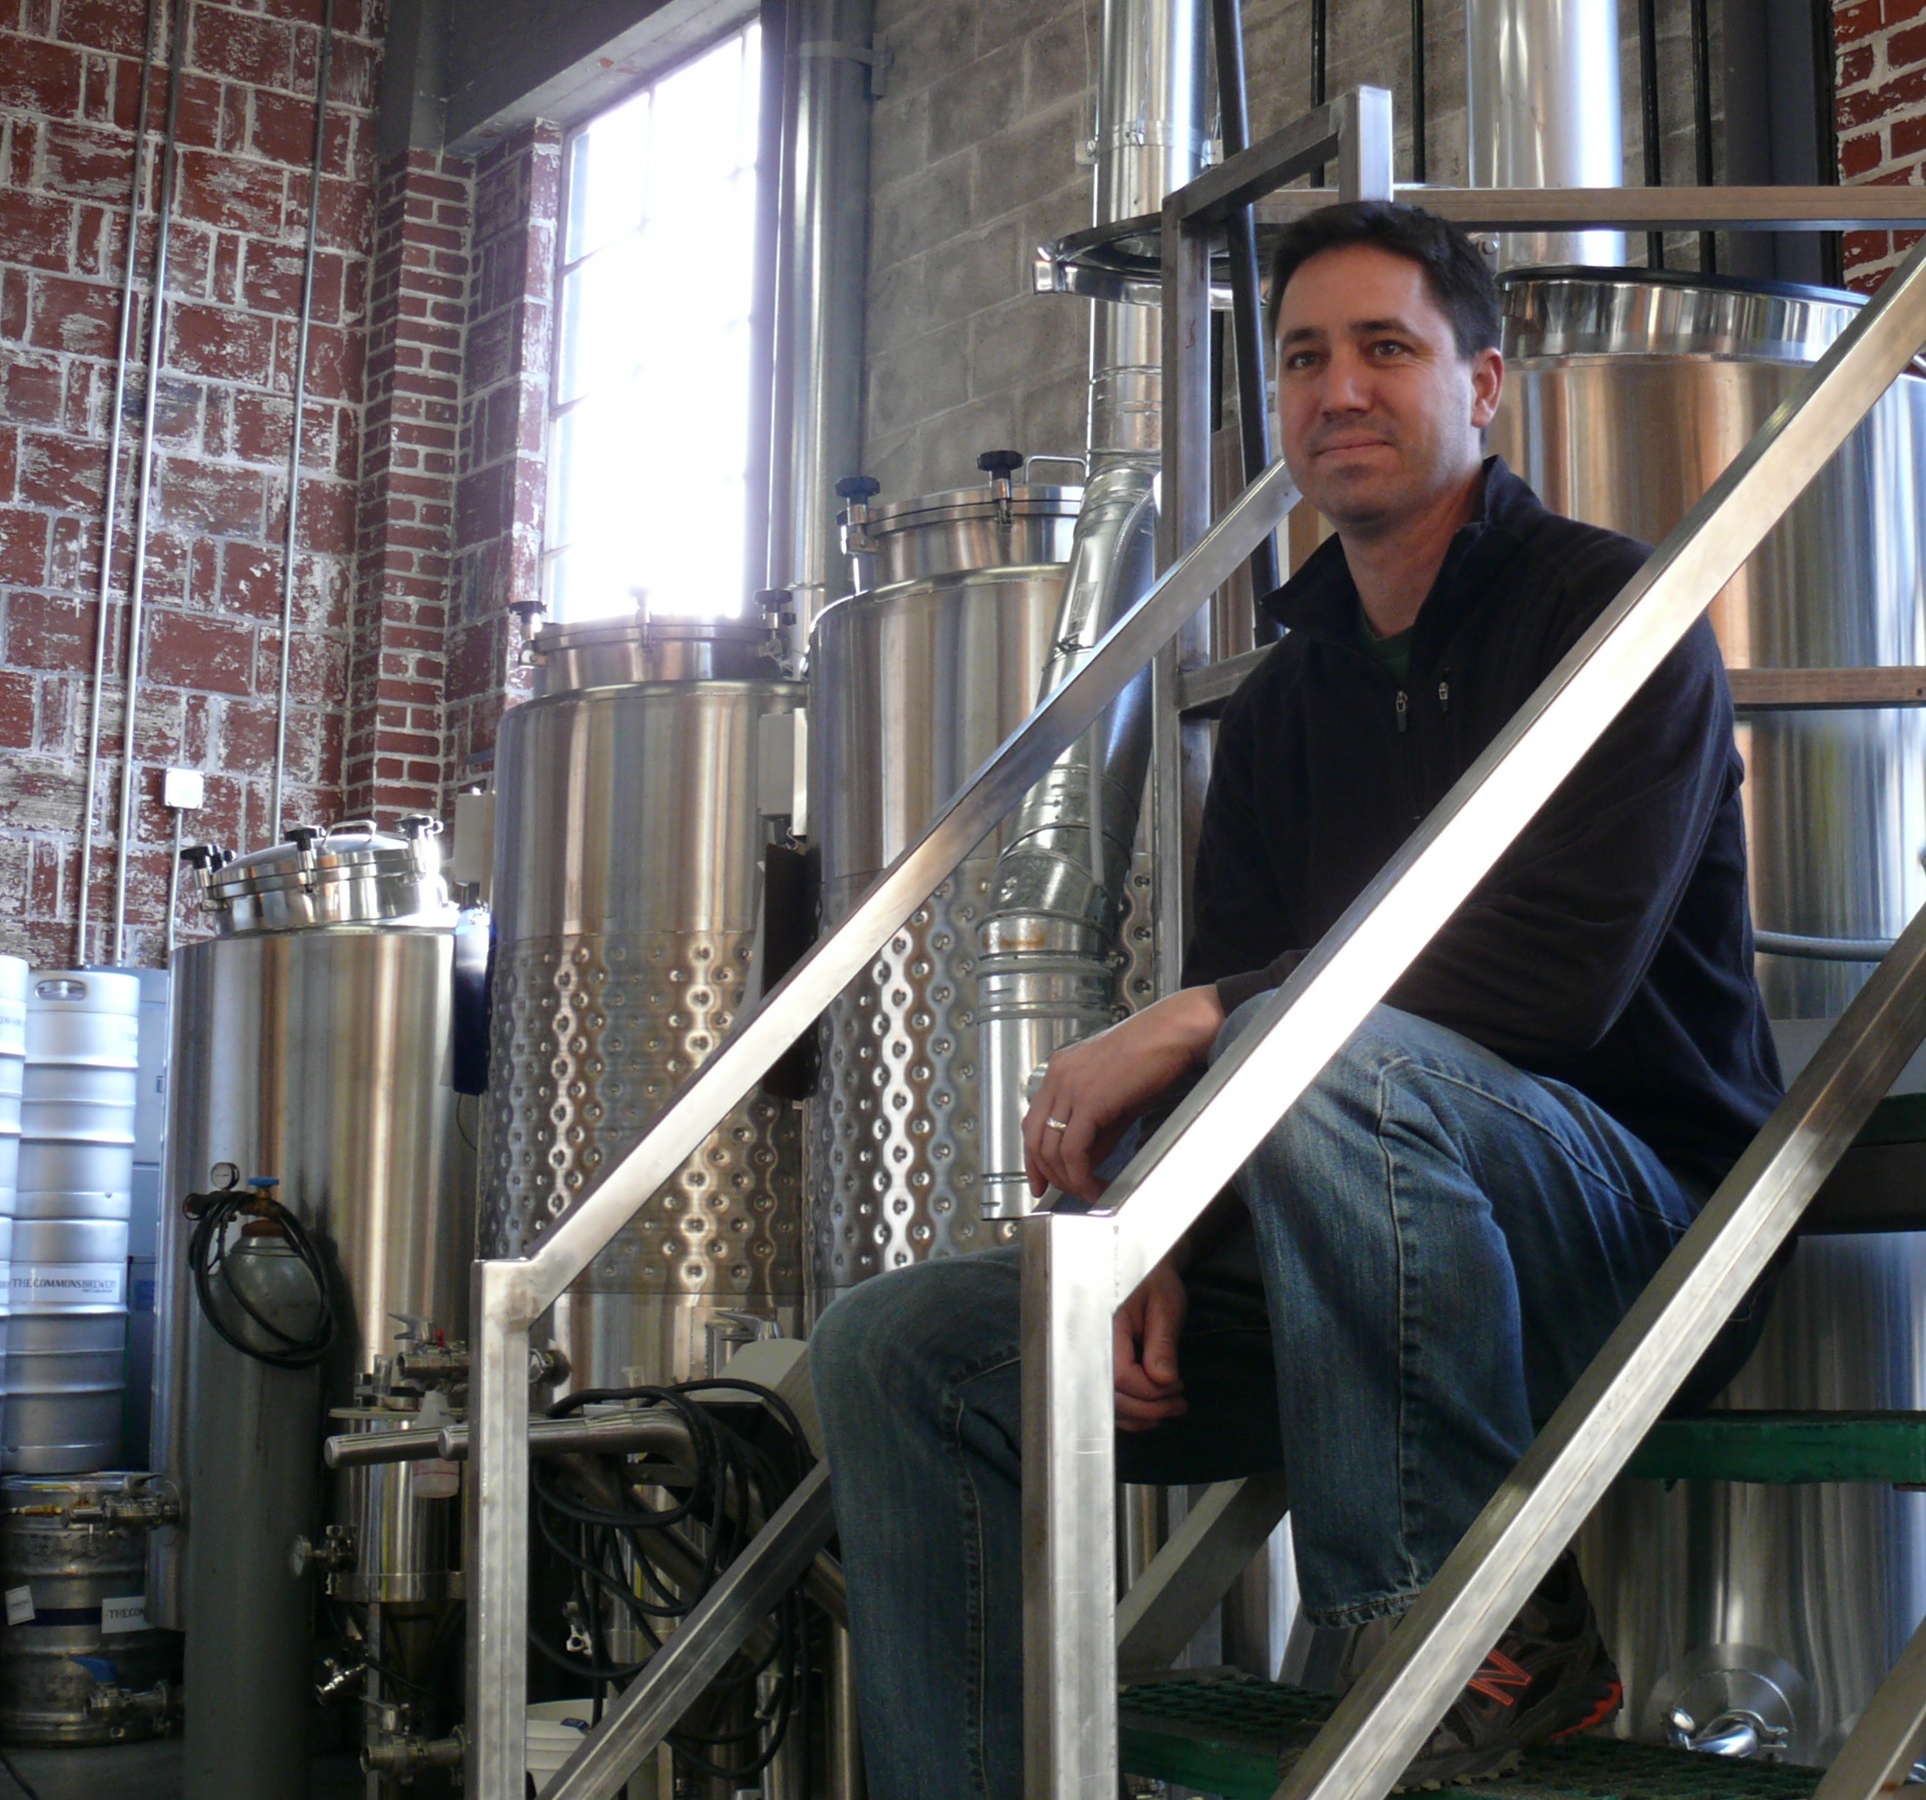 Mike Wright, owner of The Commons Brewery in Portland, Oregon.